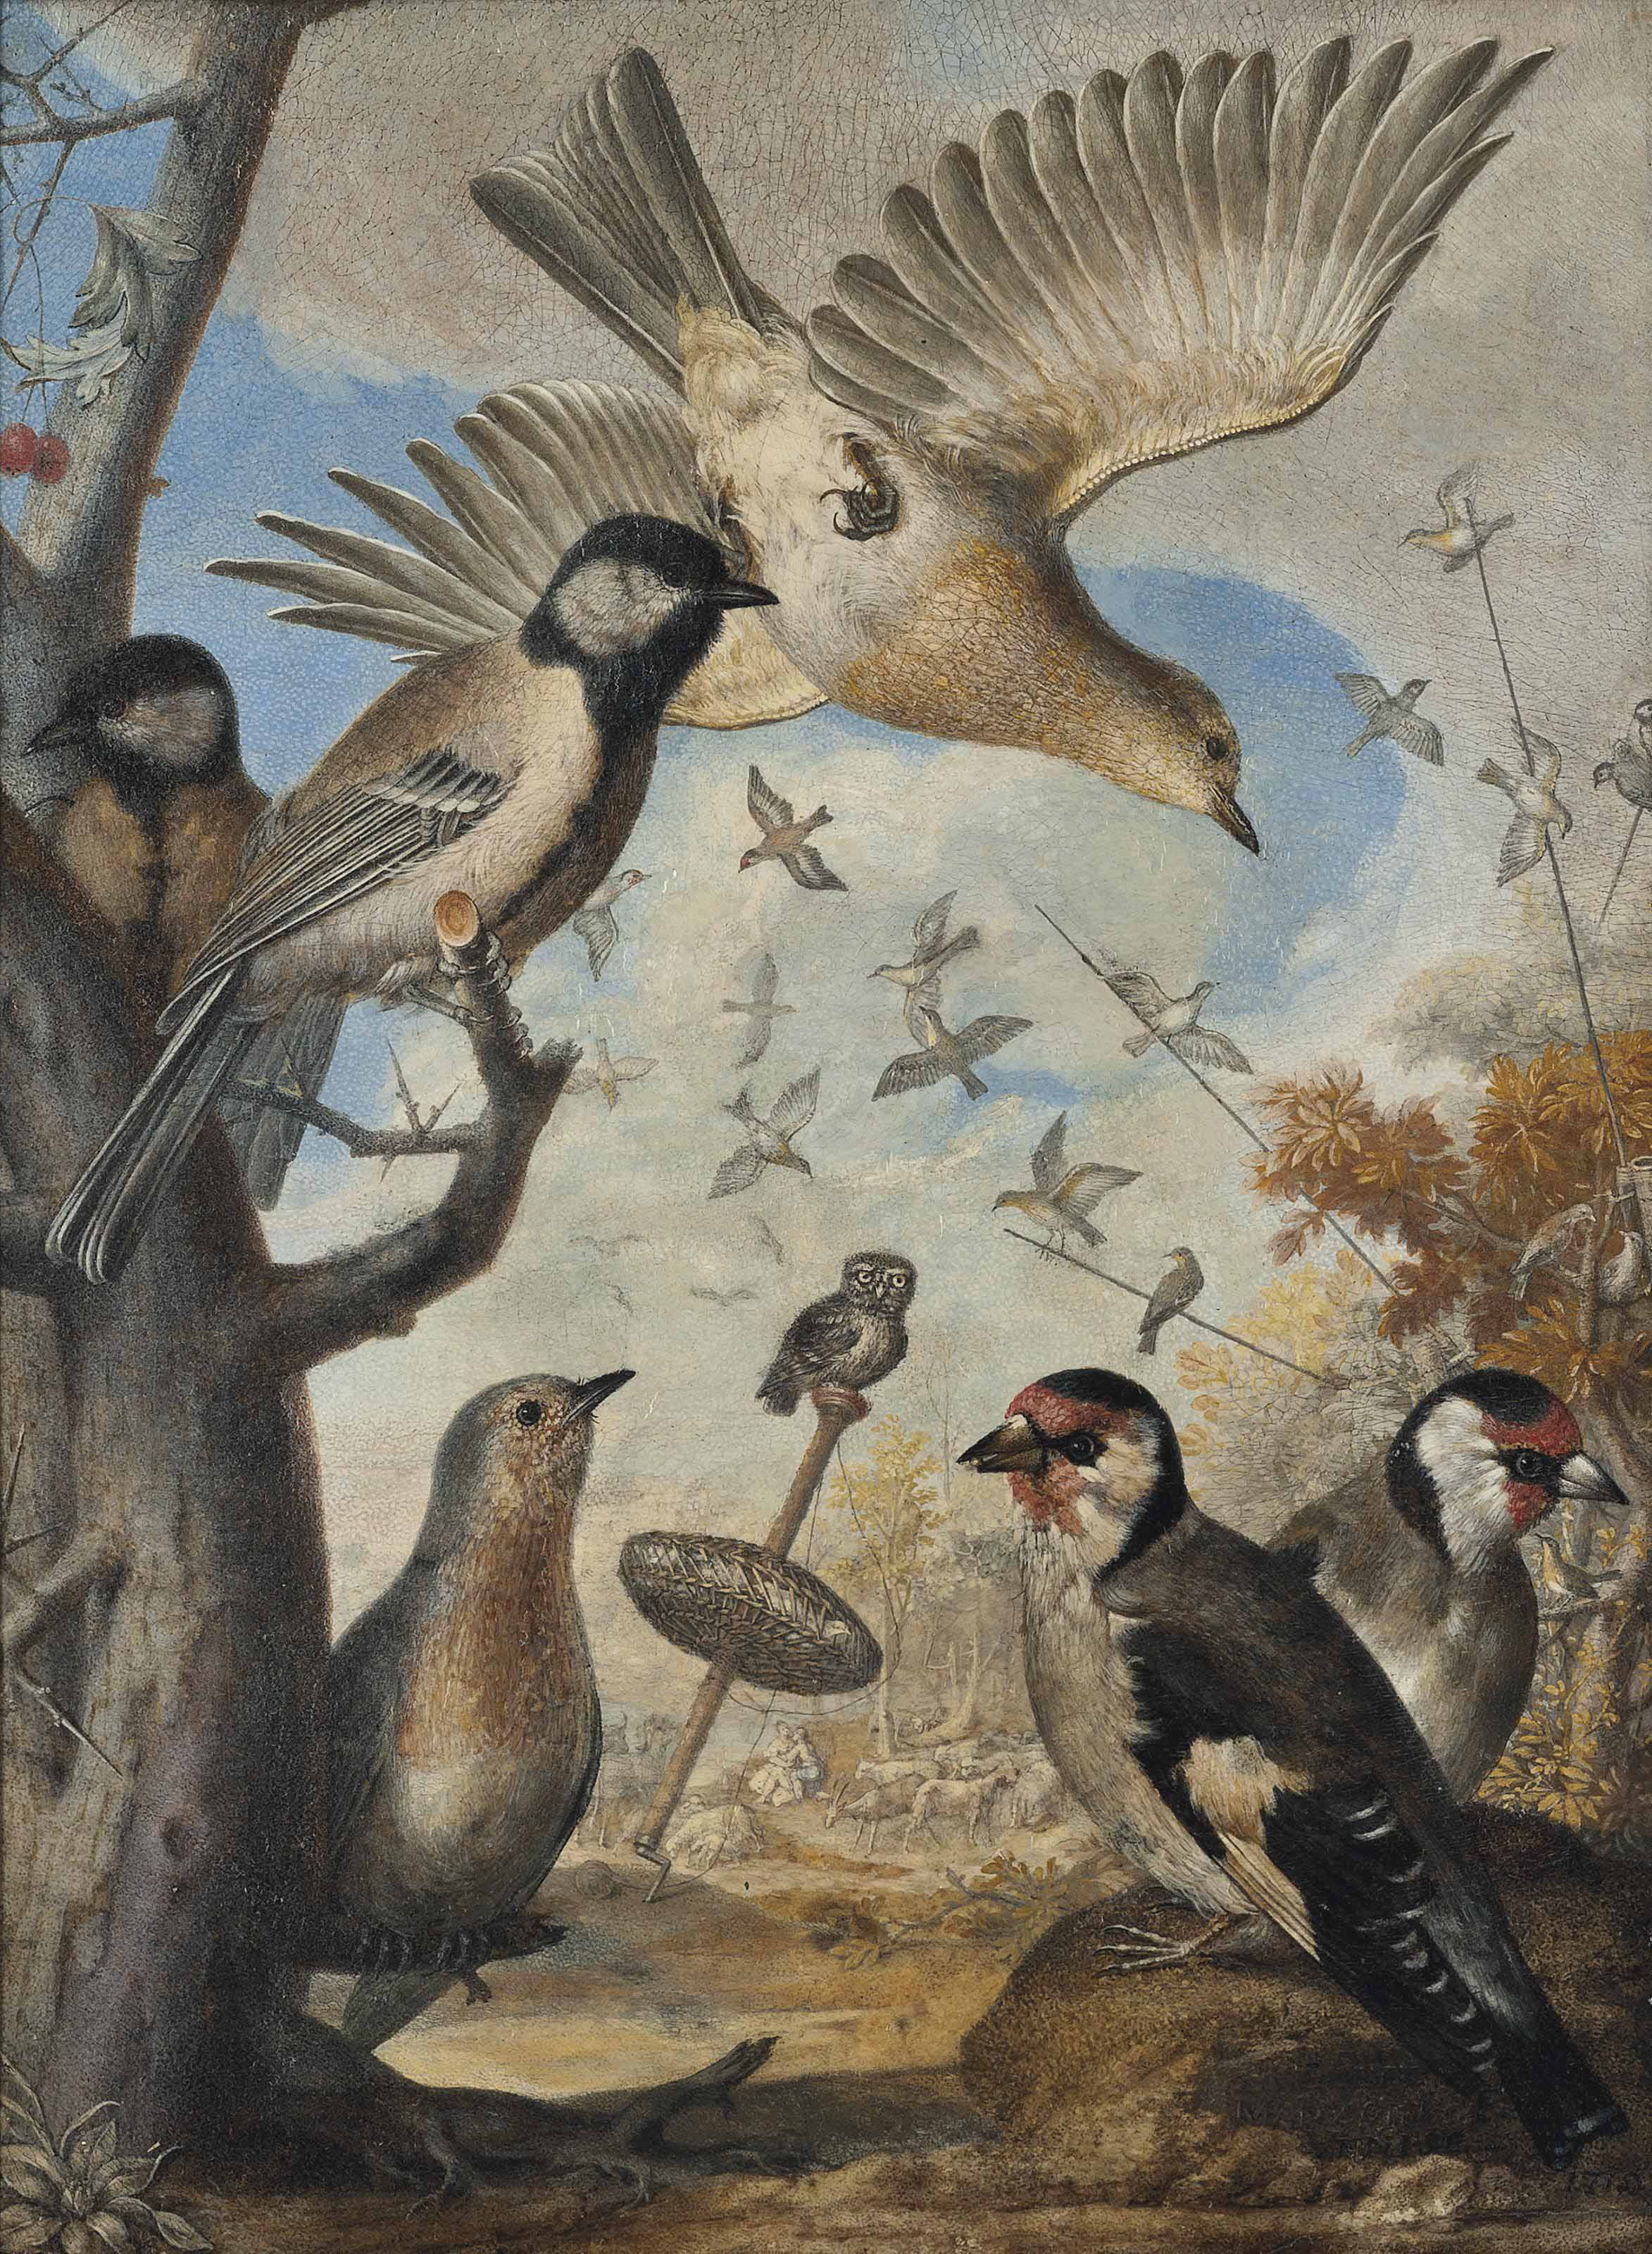 Finches and other small birds by a tree stump, an owl perched on a bird trap and shepherds with their flocks beyond